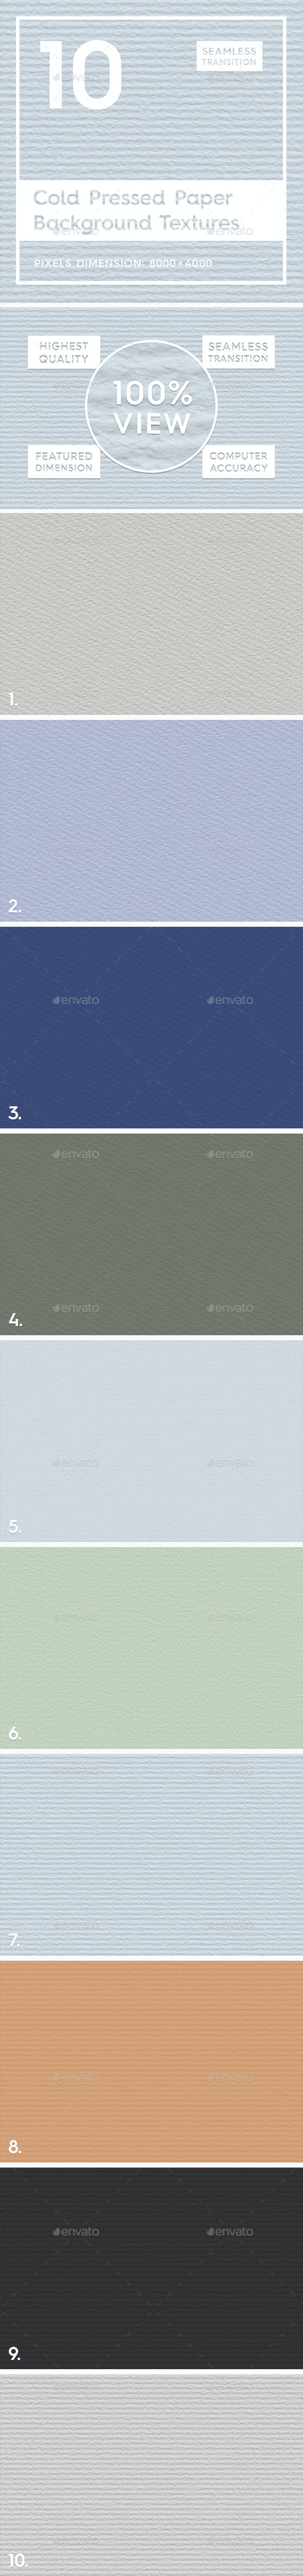 10 Cold Pressed Paper Textures - 3DOcean Item for Sale